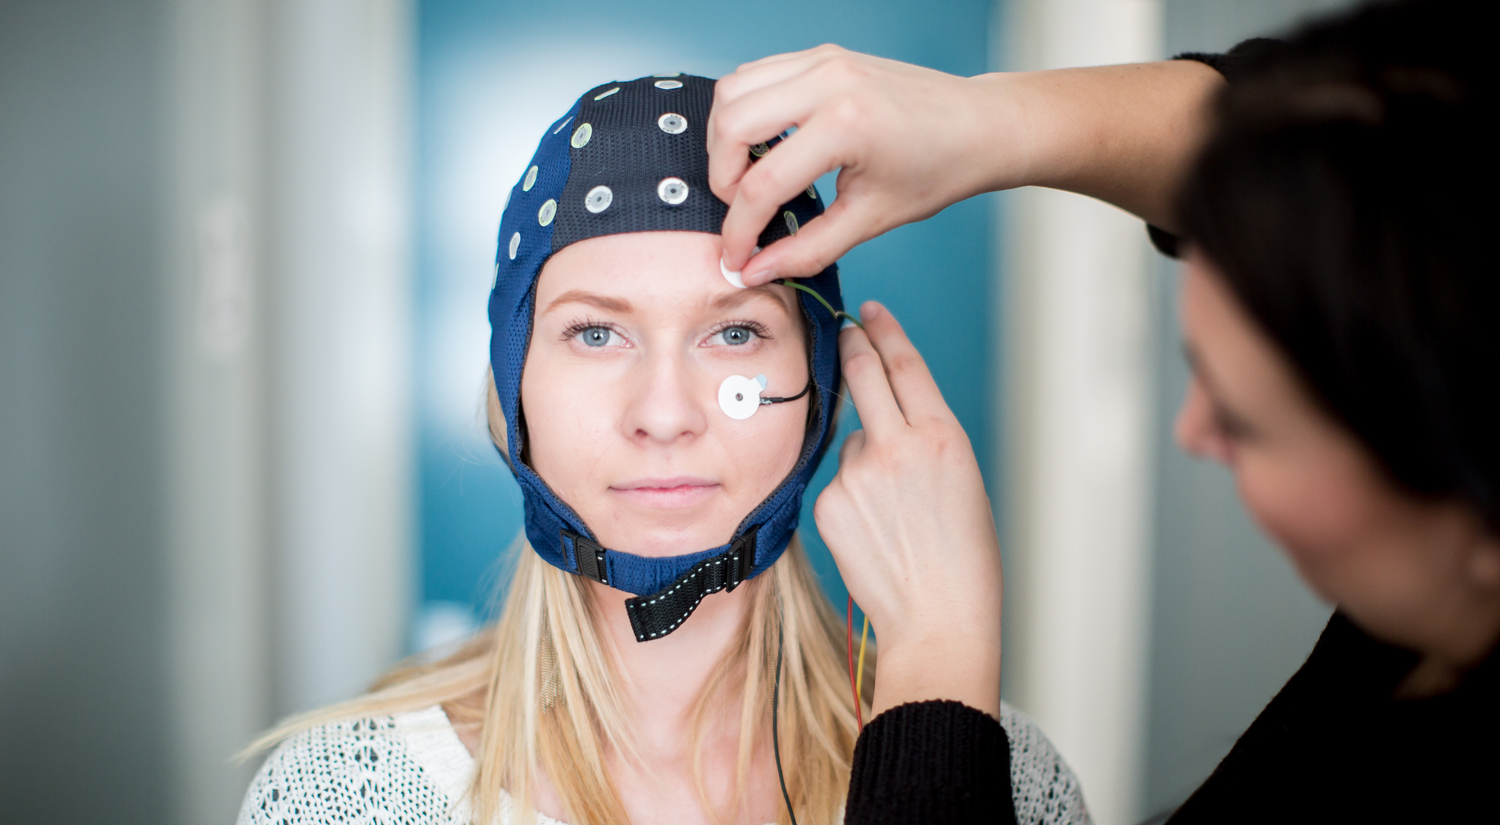 A woman wearing a blue EEG cap looking directly at the camera. A second person standing on the right of the shot is adjusting some sensors attached to her face, one above her left eyebrow and the other just underneath the same eye.